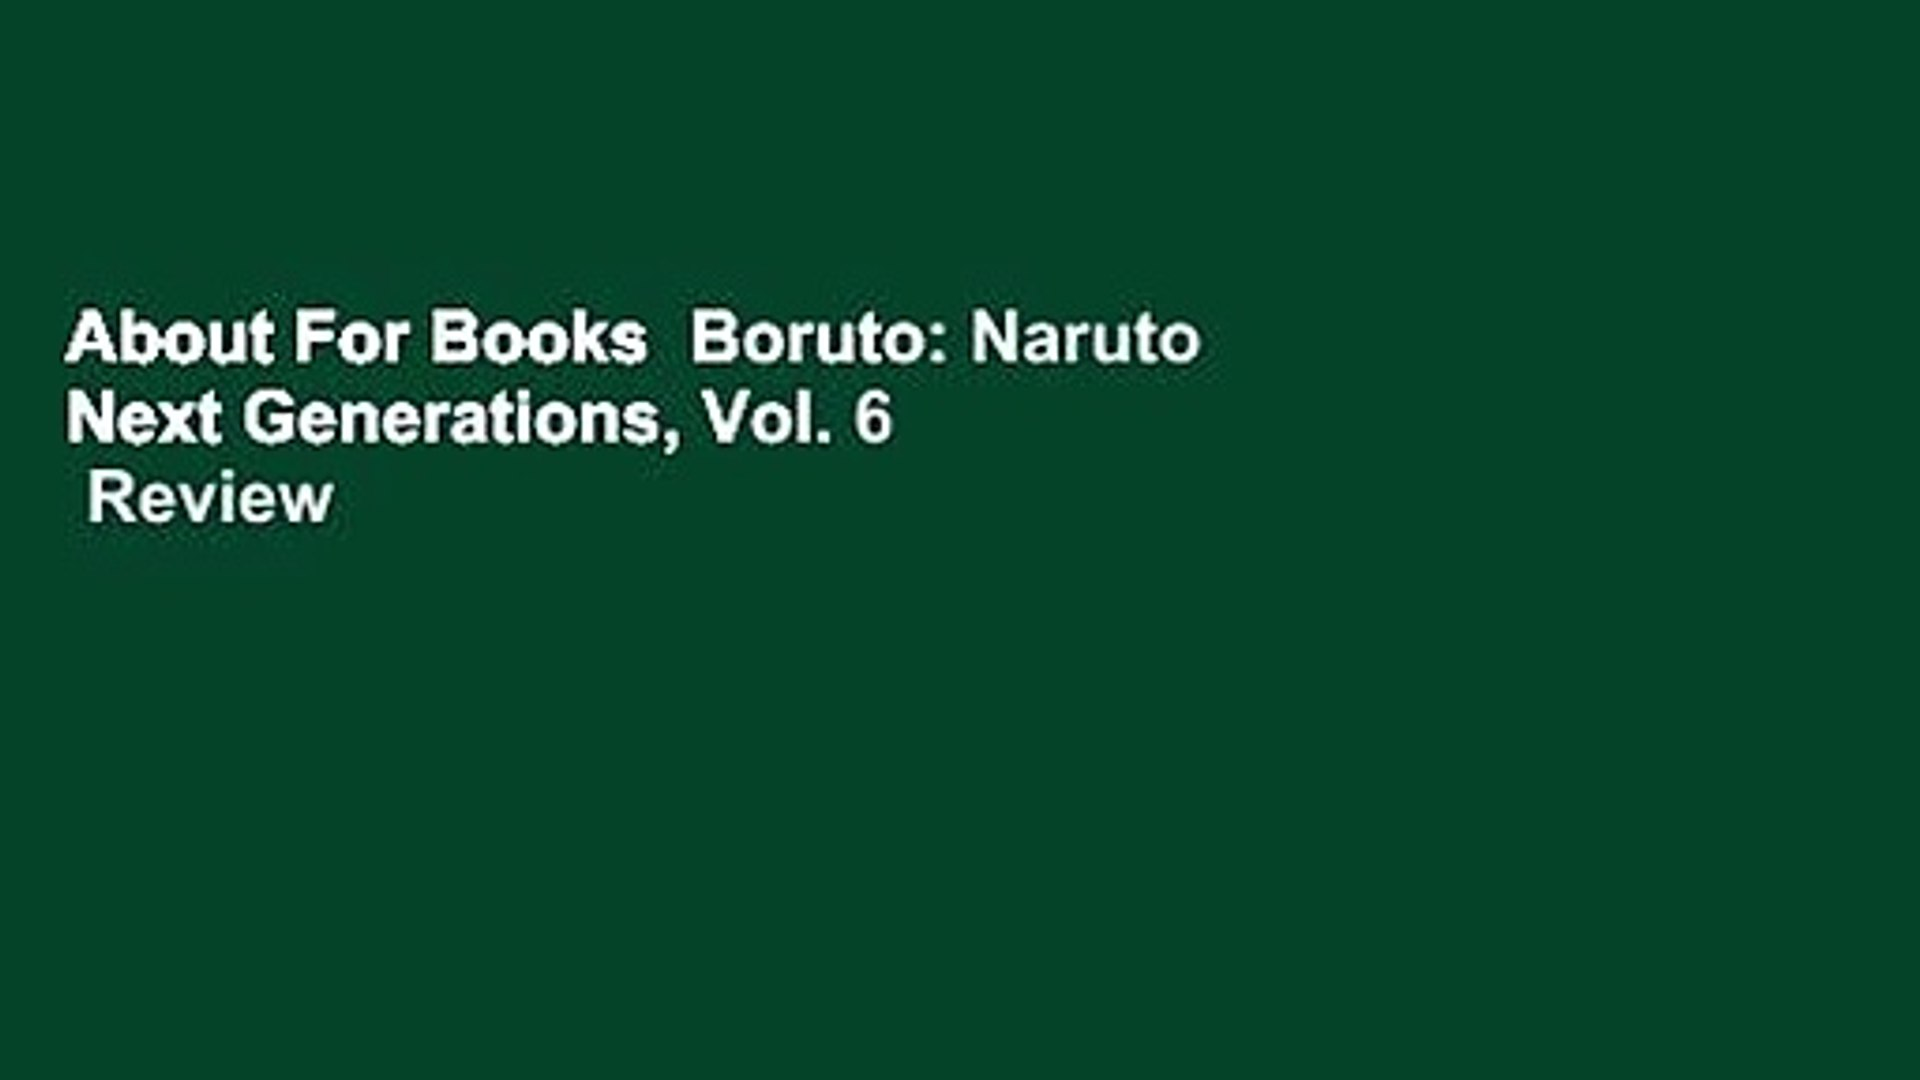 About For Books  Boruto: Naruto Next Generations, Vol. 6  Review